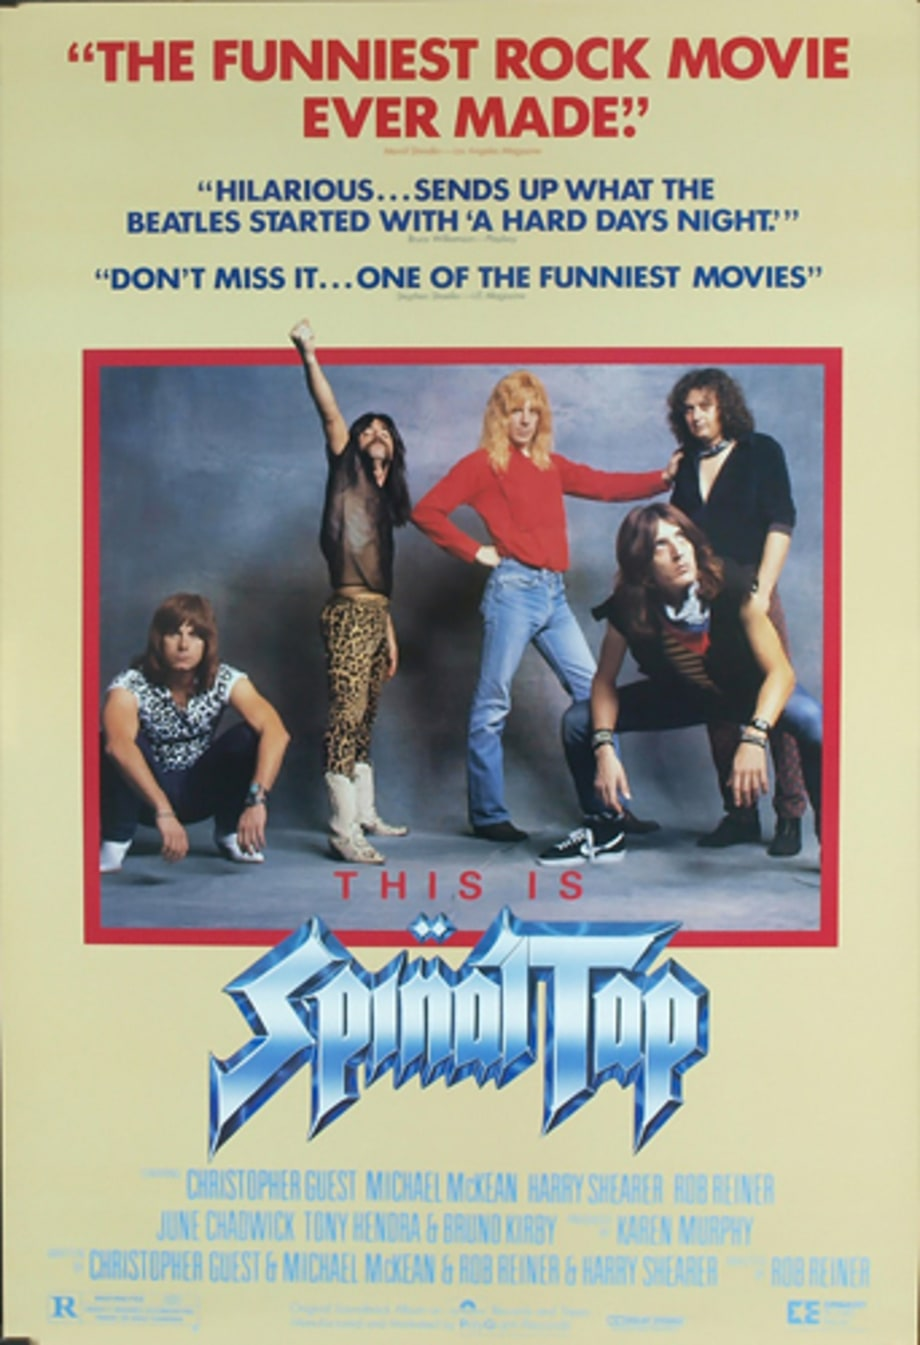 3. 'This Is Spinal Tap'